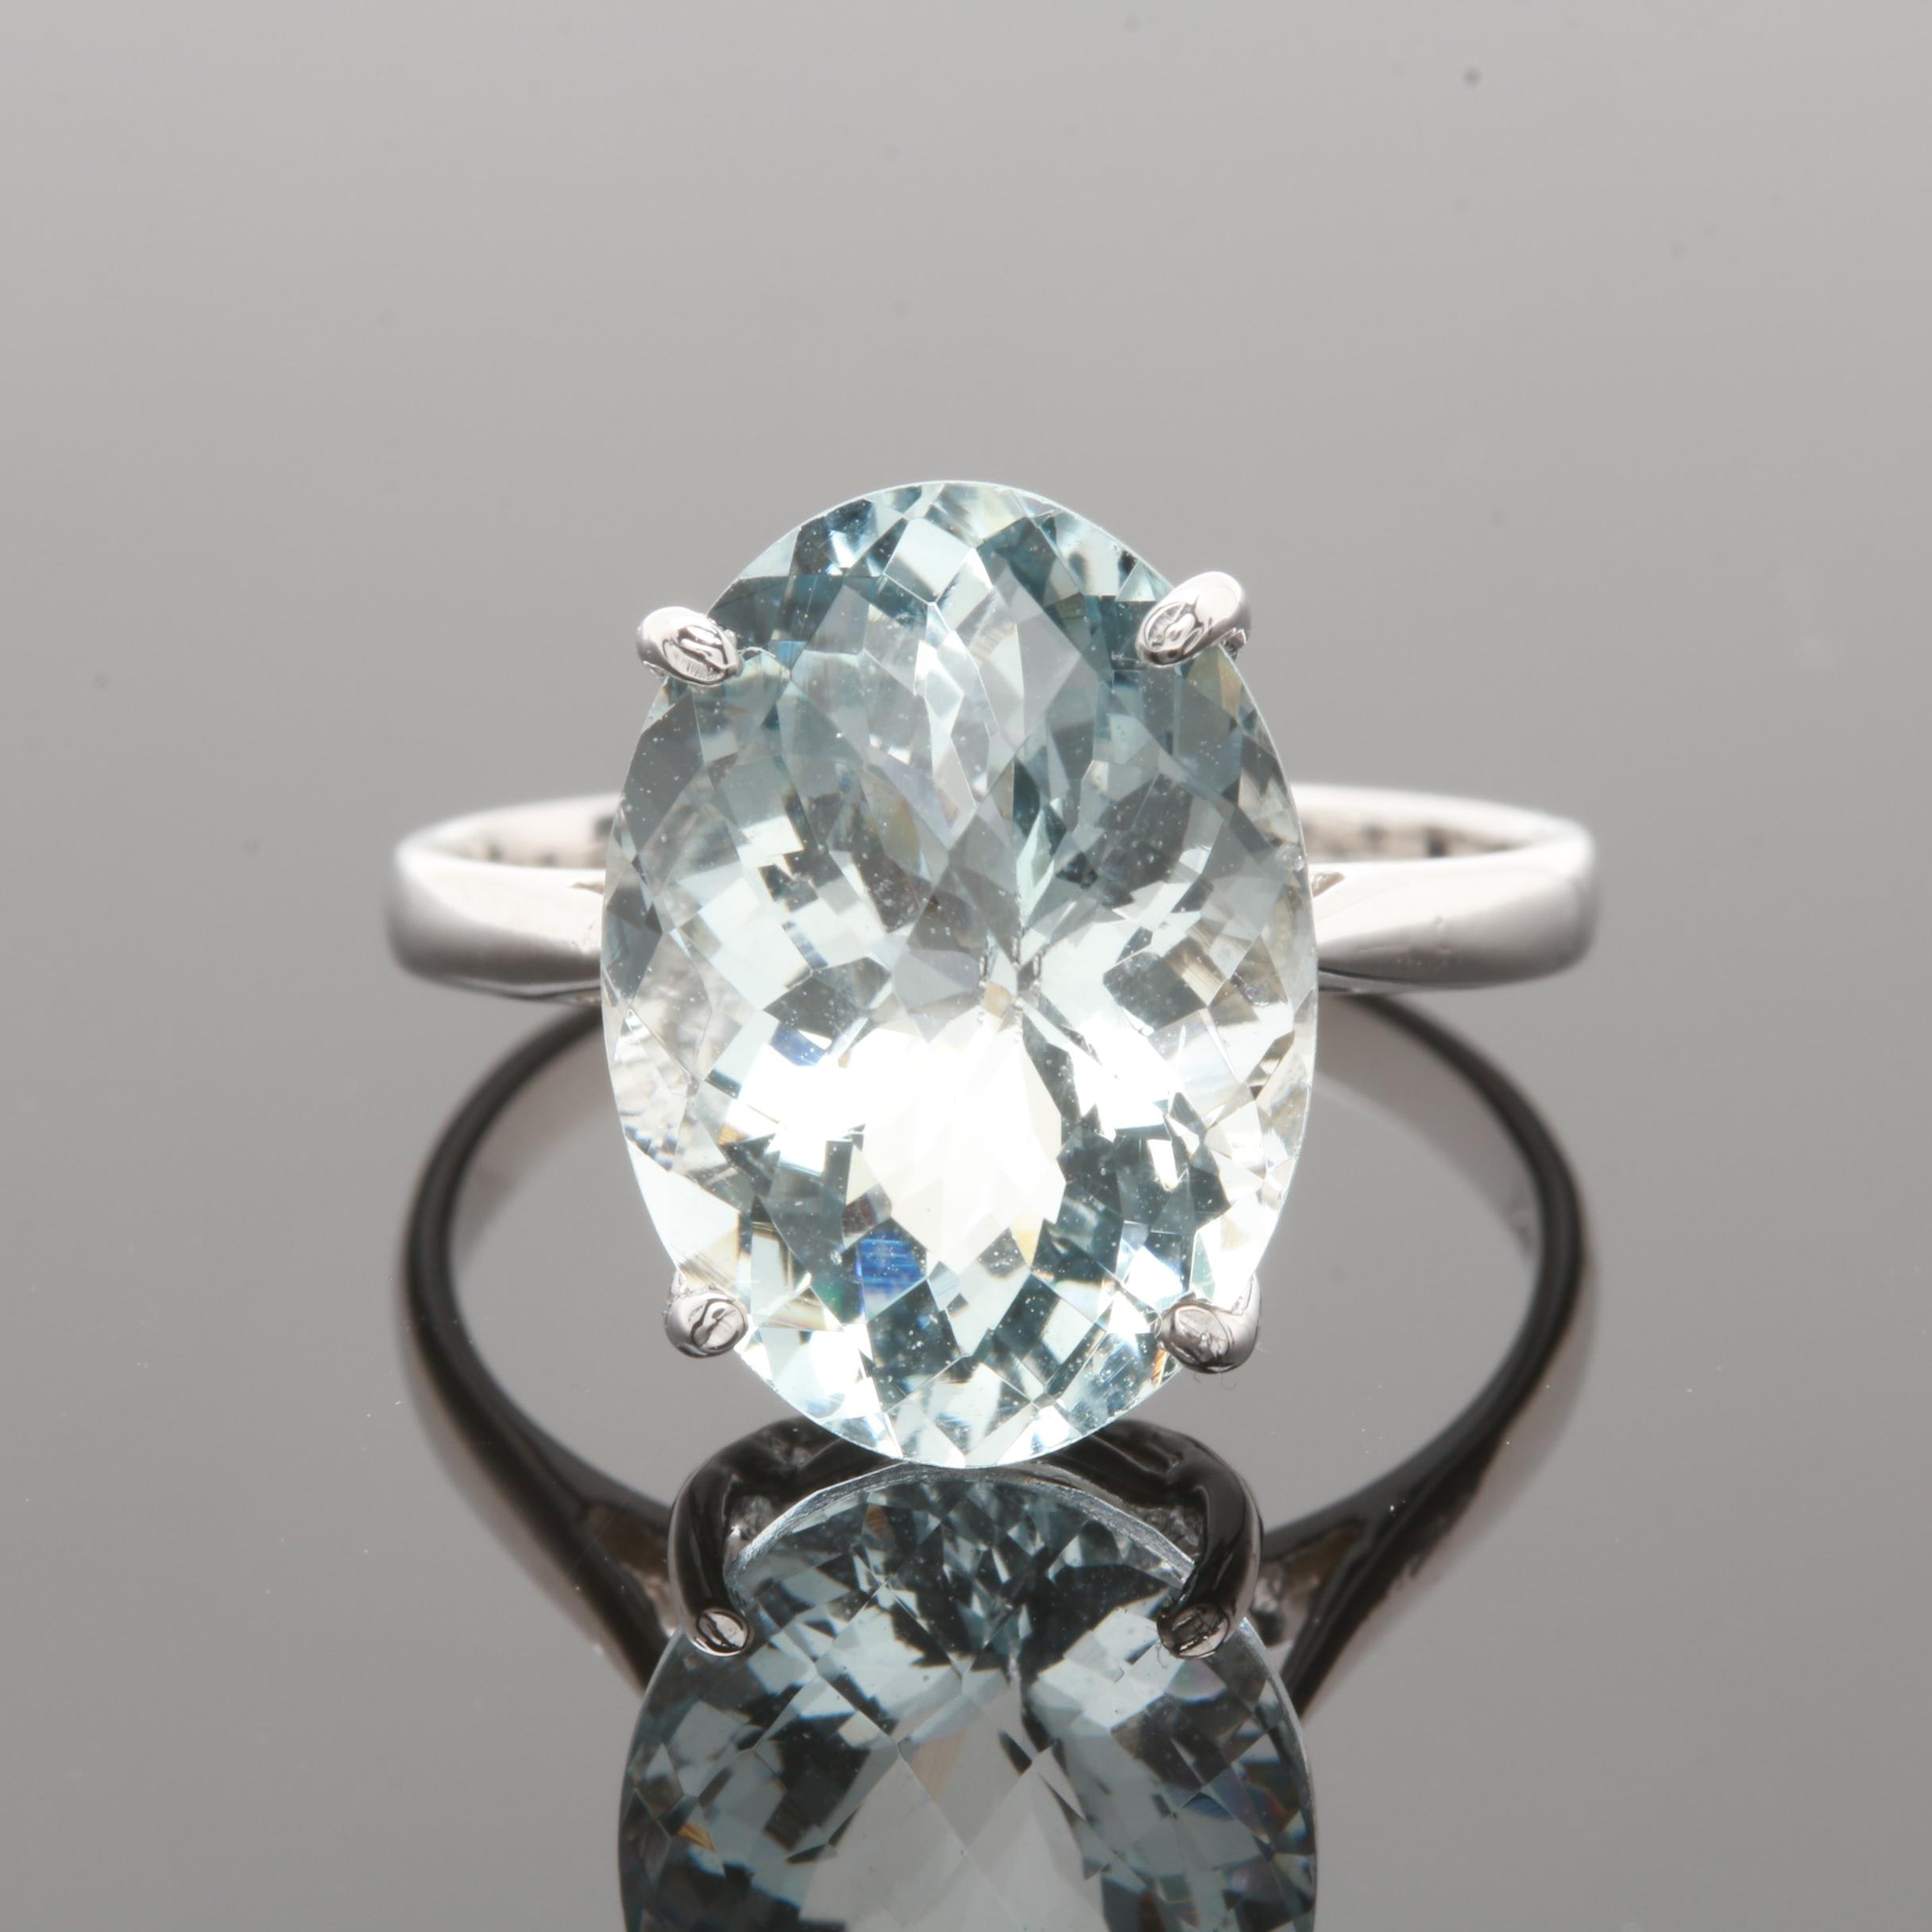 14K White Gold 5.60 CT Aquamarine Ring